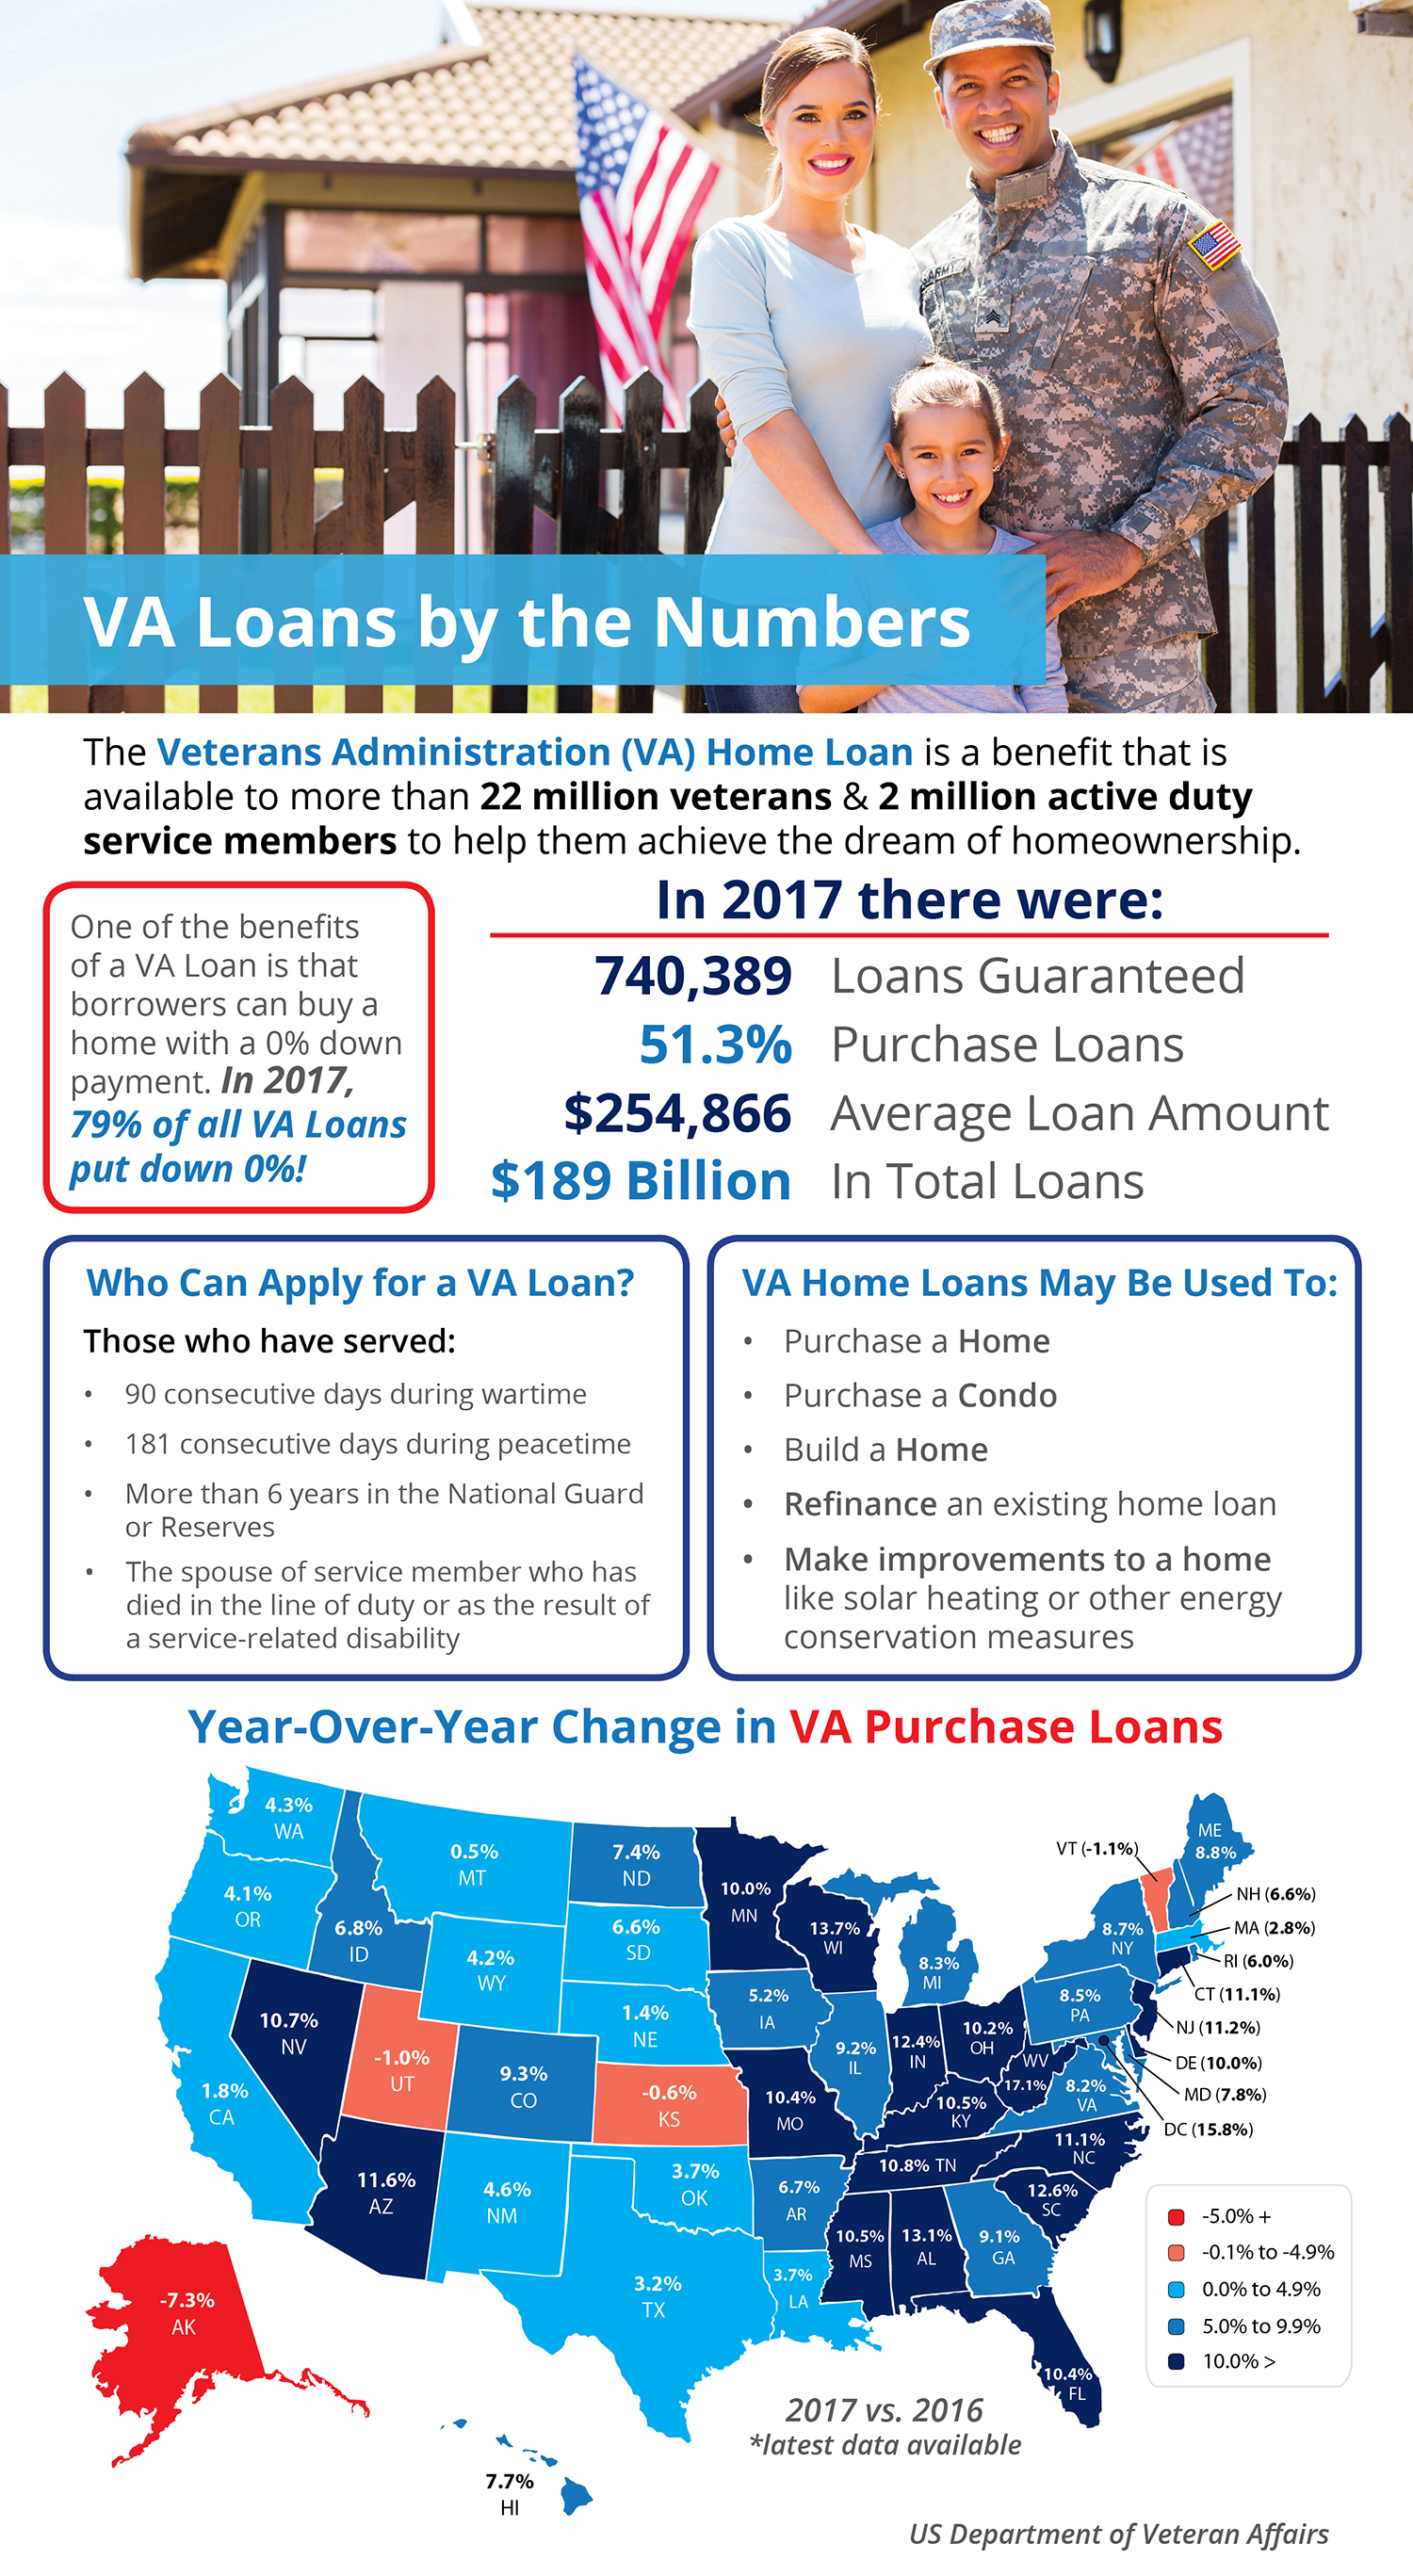 Sacramento VA Home Loans by the Numbers [INFOGRAPHIC]